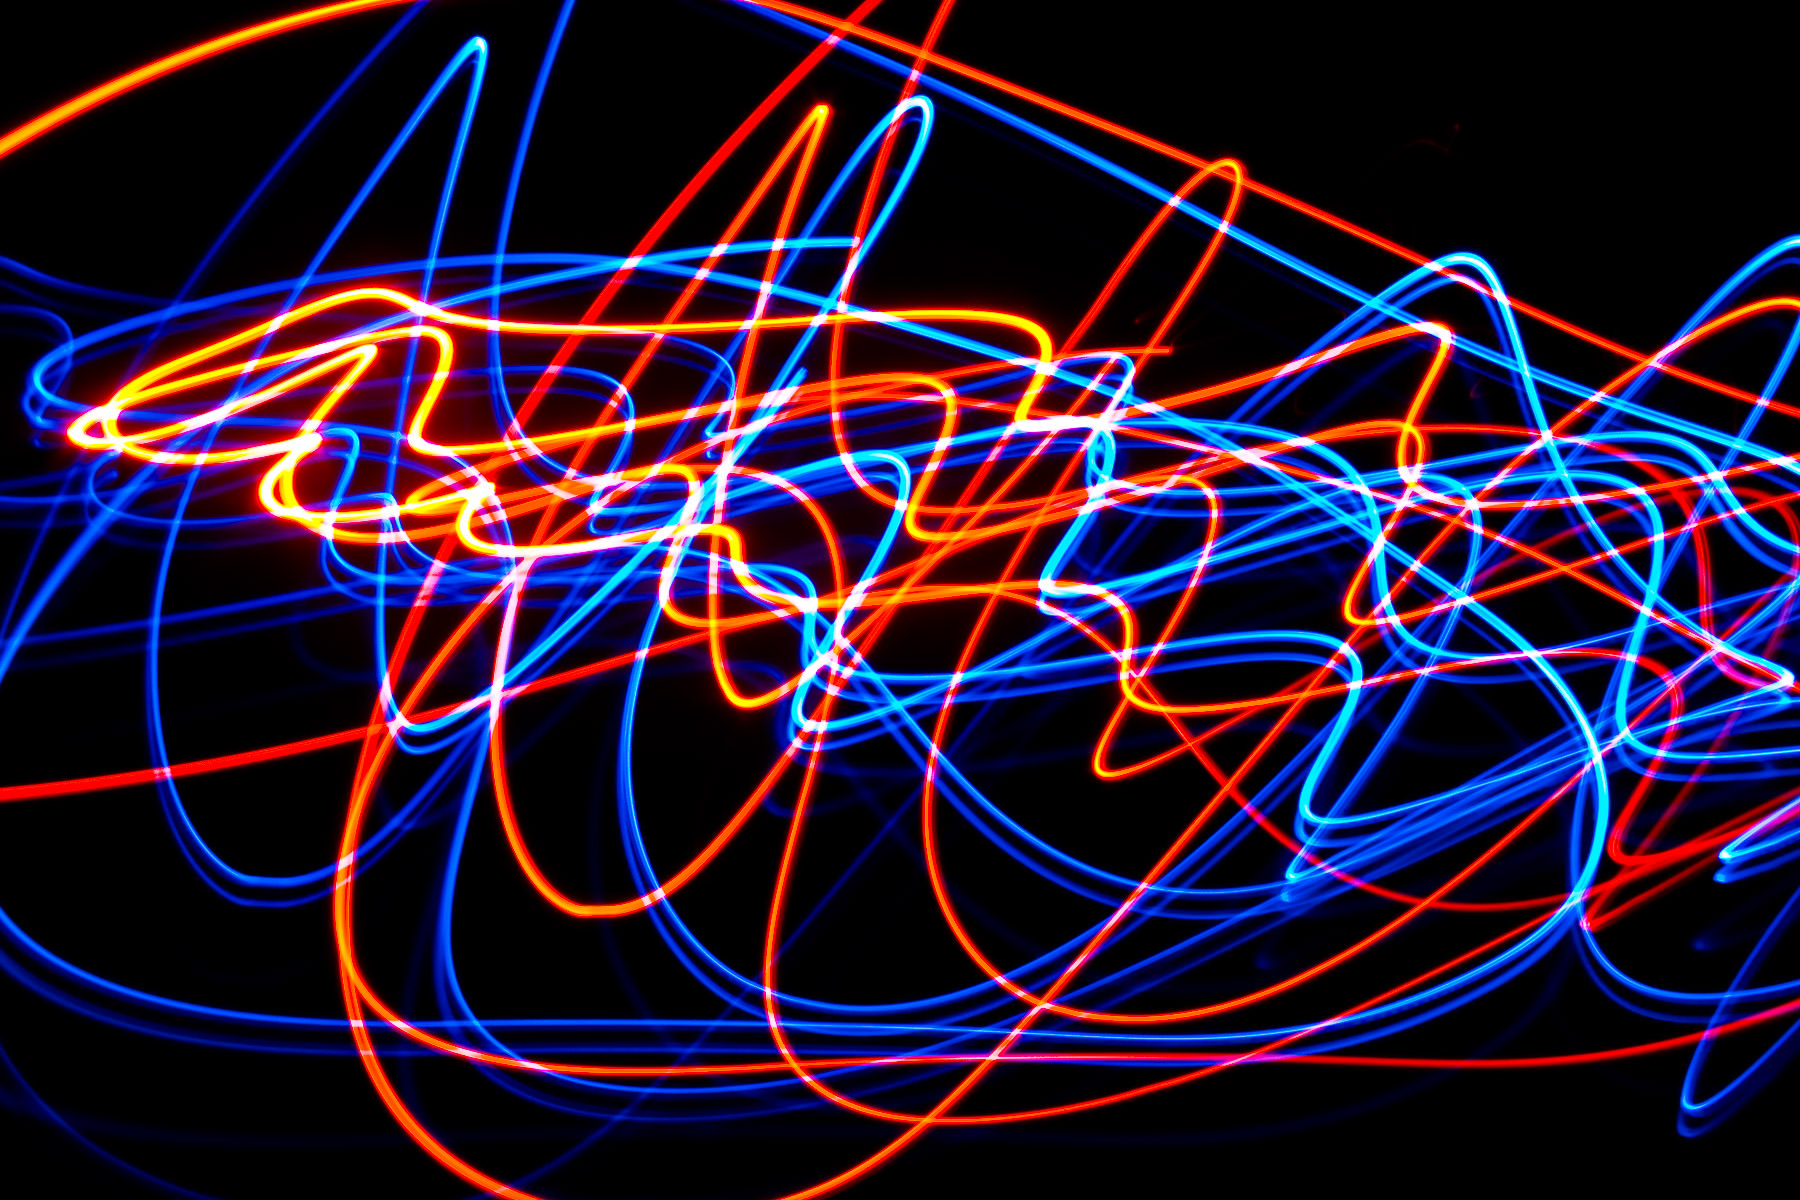 I was playing around with LEDs, a candle, a dark room and long exposures again and came up with this.